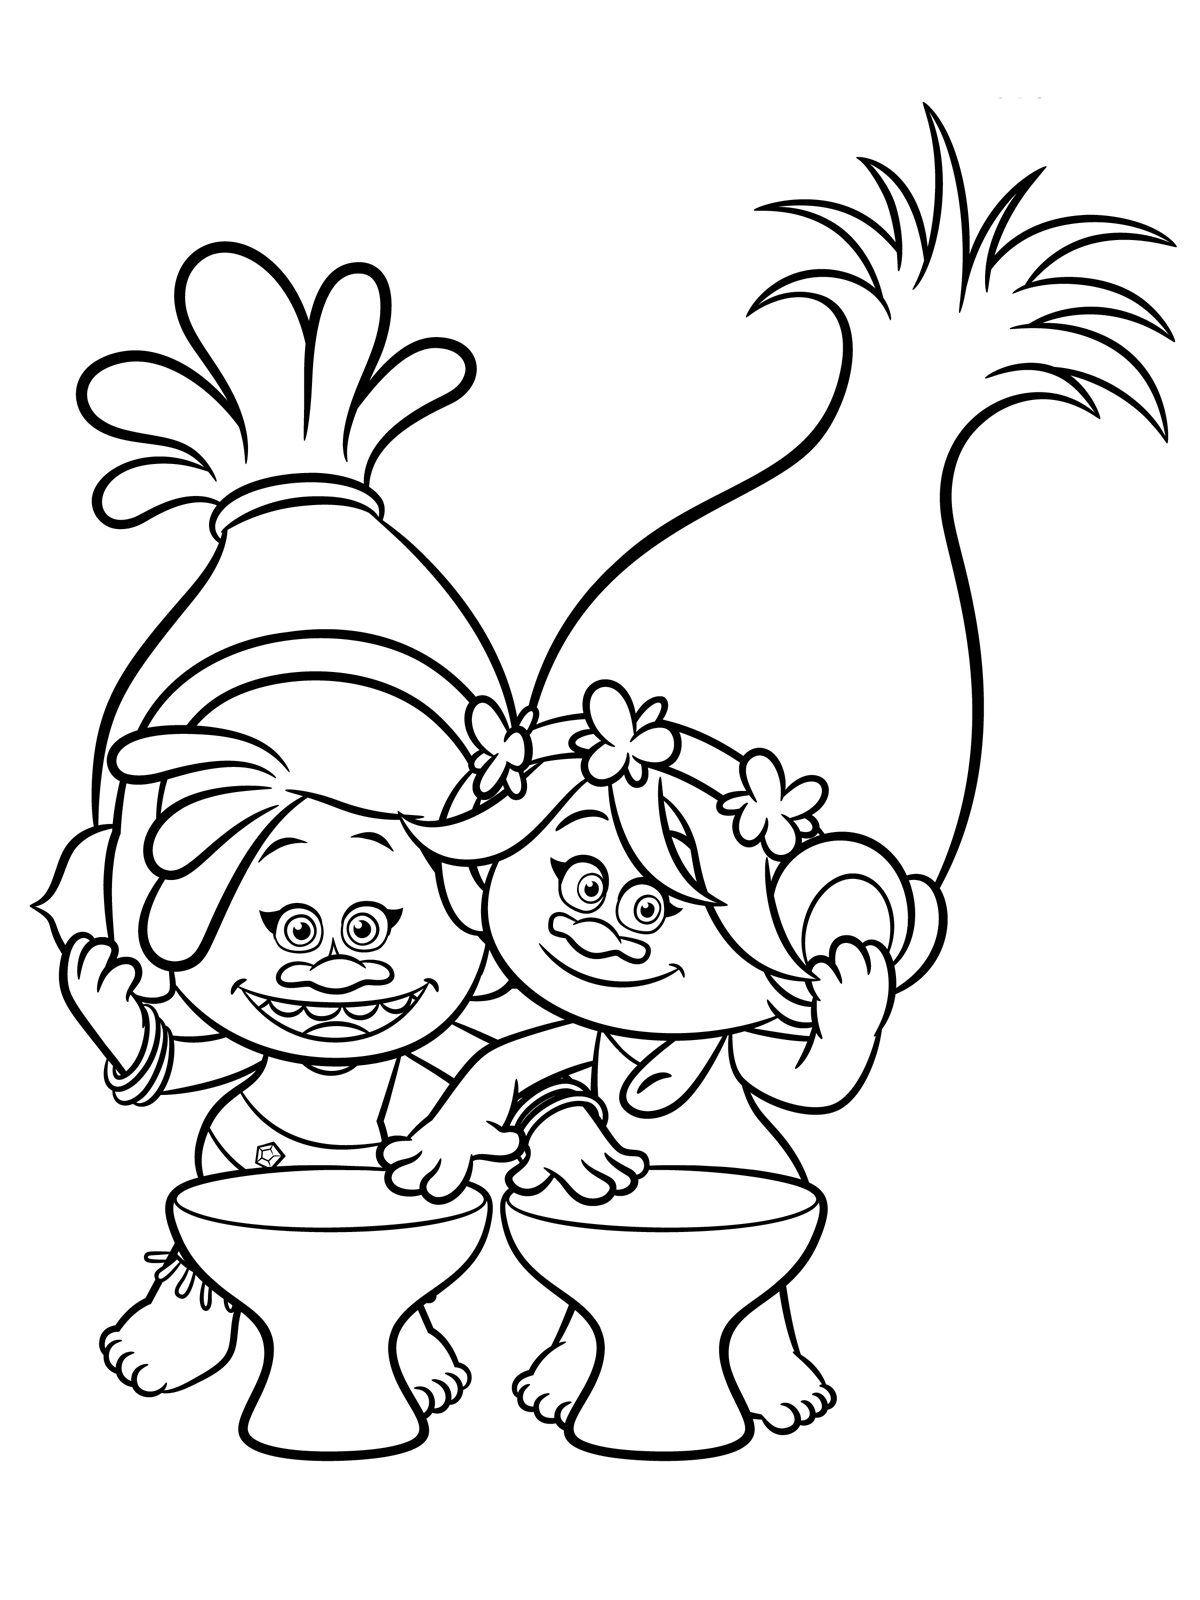 trolls coloring pages - trolls